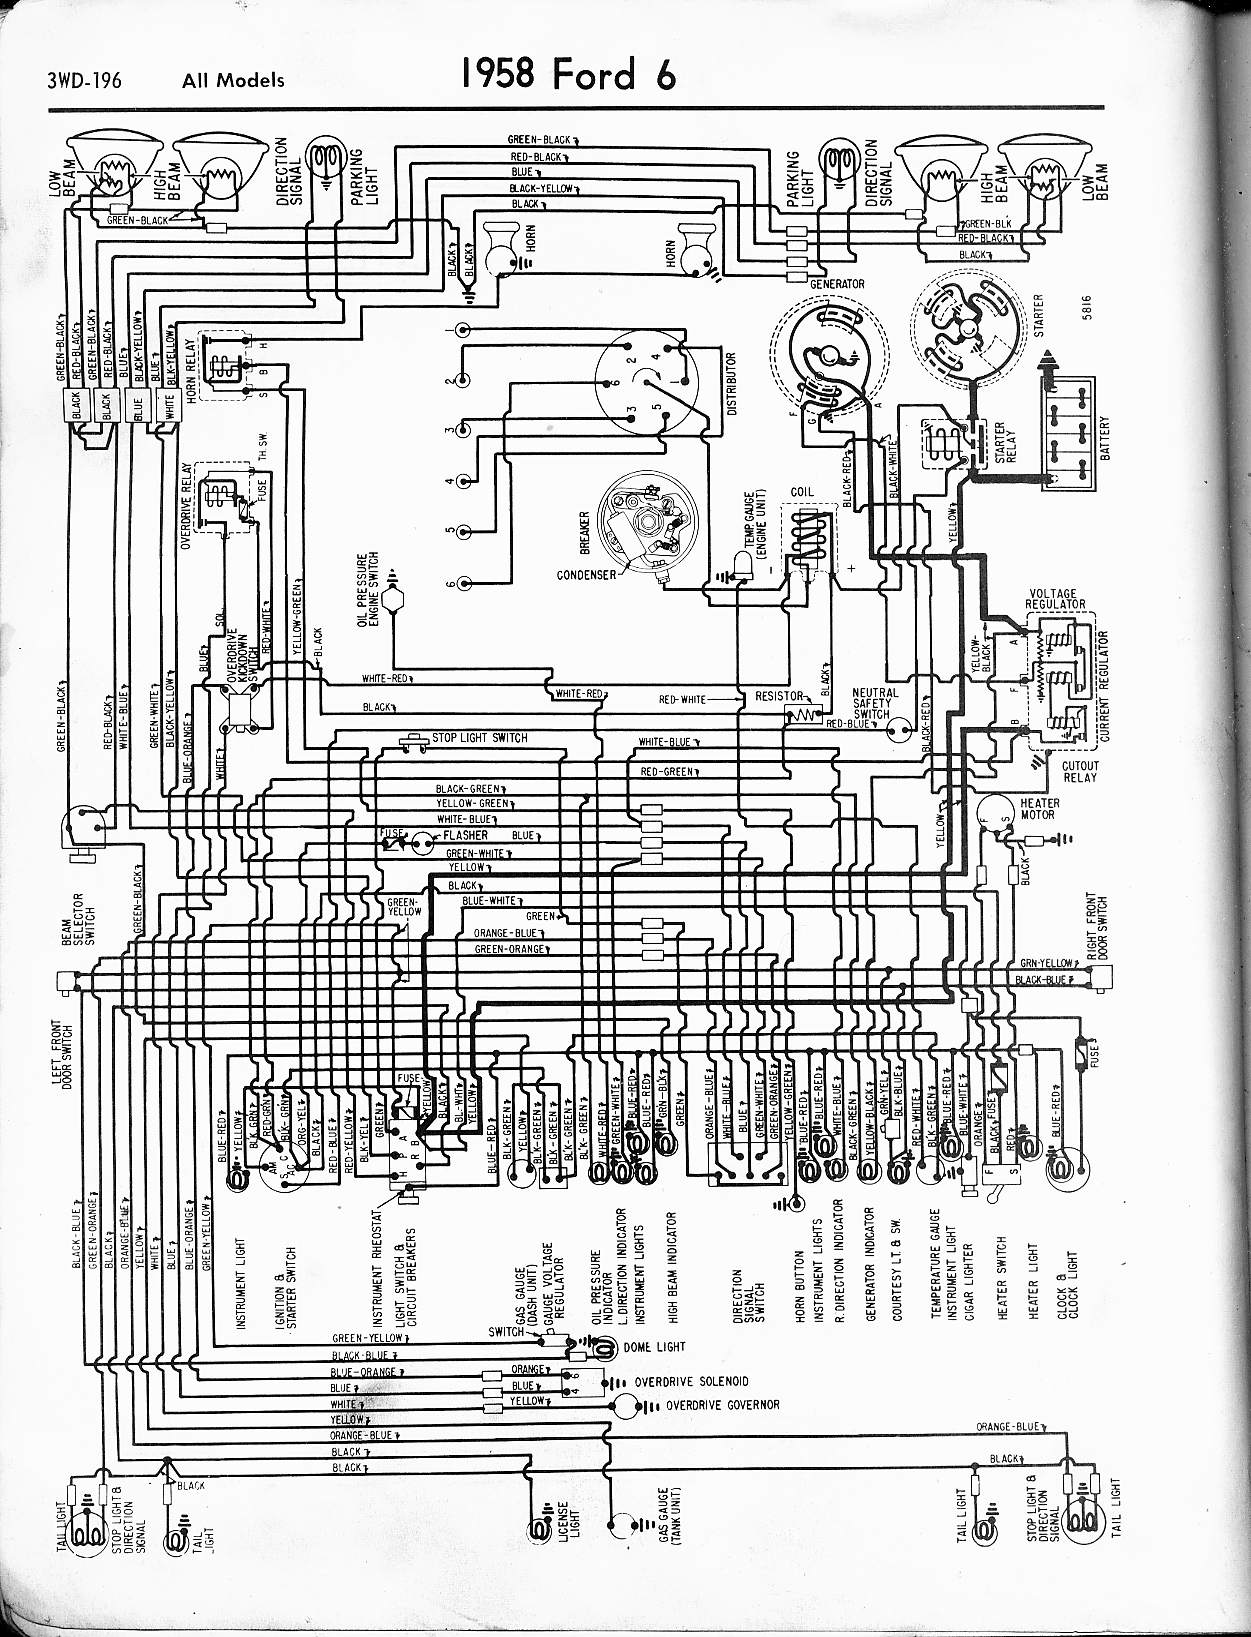 Ford E 150 Wiring Diagram Online Circuit 1999 Suzuki Esteem Belt Schematic For Pick Up House Symbols U2022 Rh Maxturner Co 1993